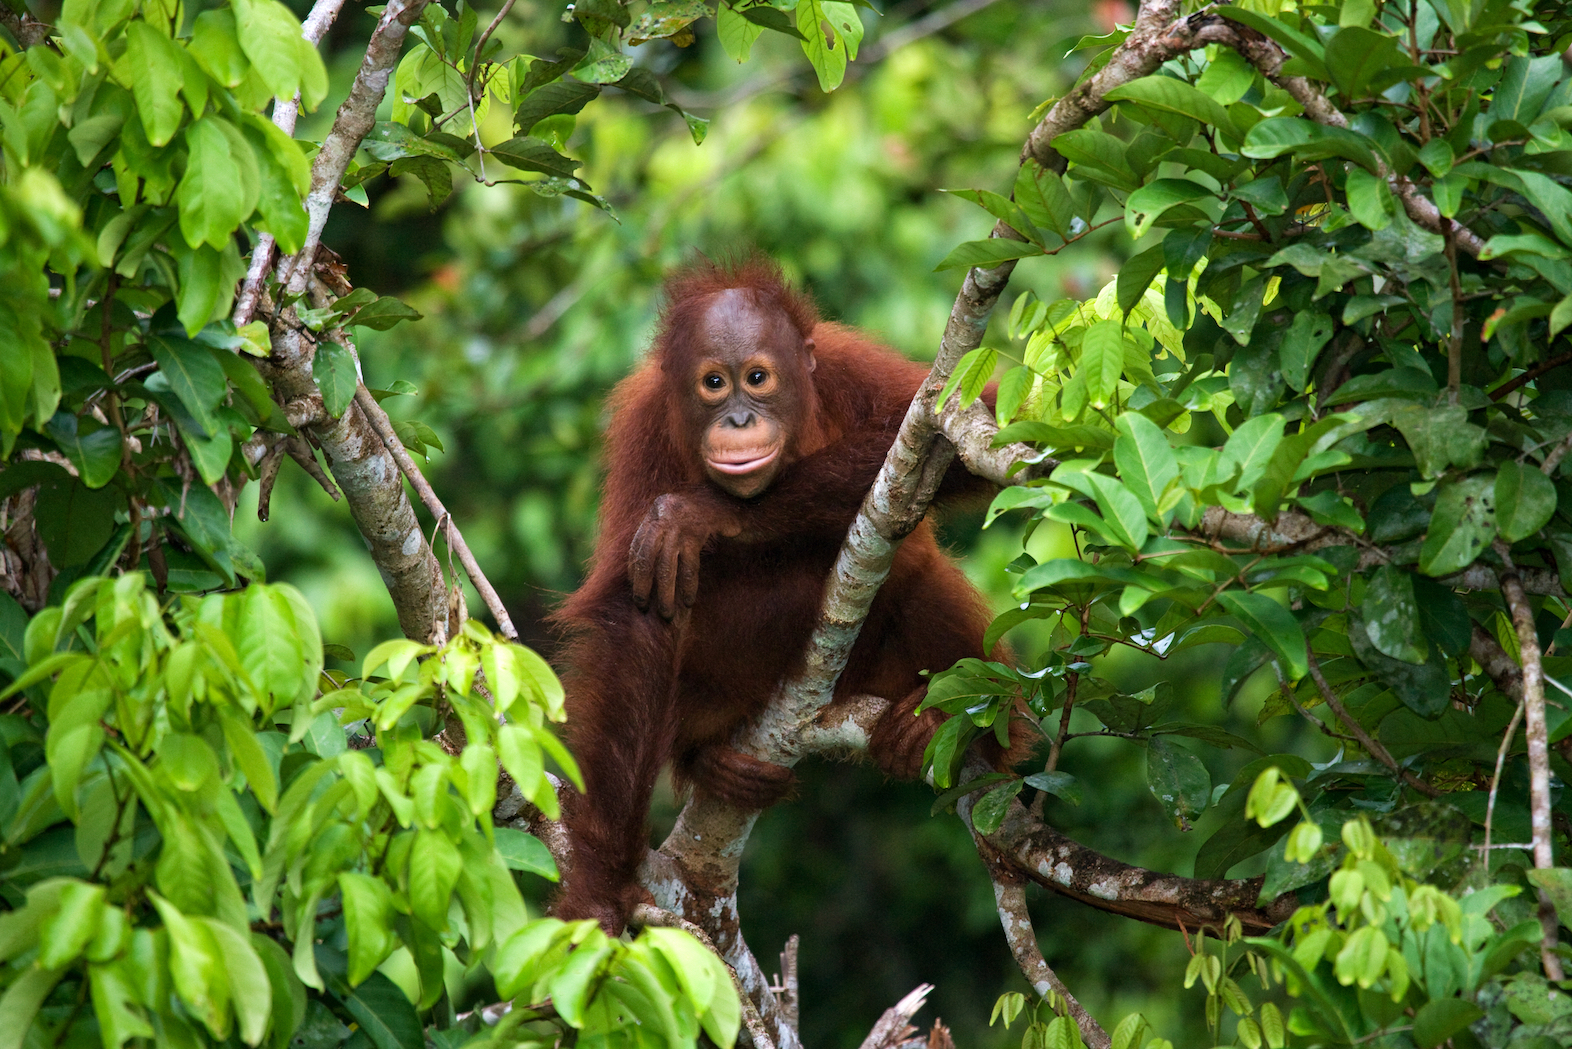 The natural habitats of primates could decline by up to 78 percent this century across regions where the animals are commonly found.